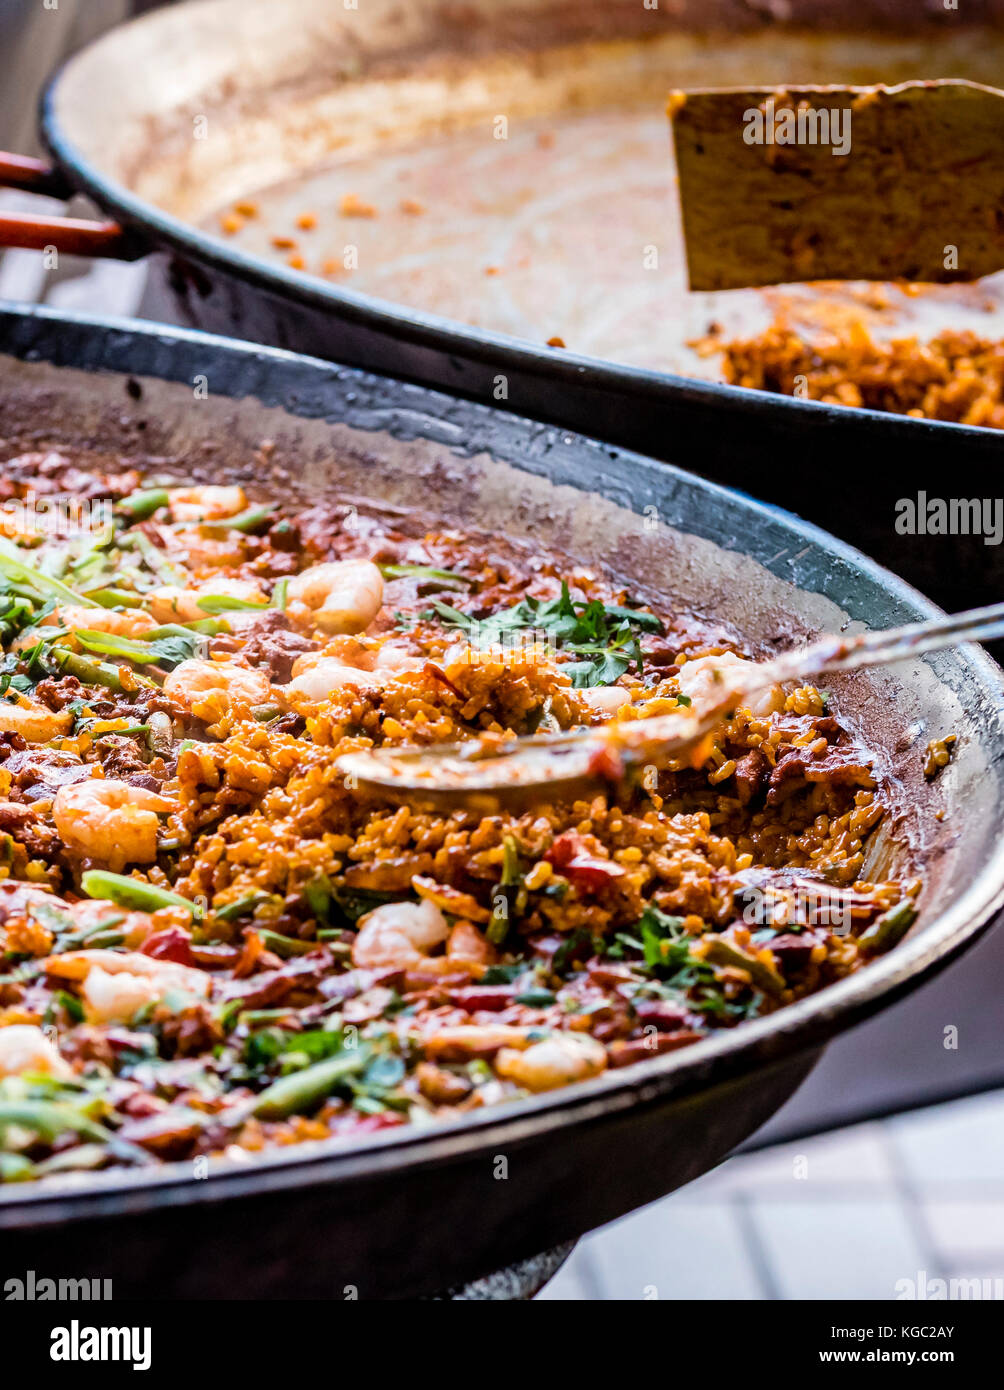 Paella dish with shrimp, closeup. Colorful Spanish paella rice in pan with vegetables and prawns. Empty pan in background Stock Photo